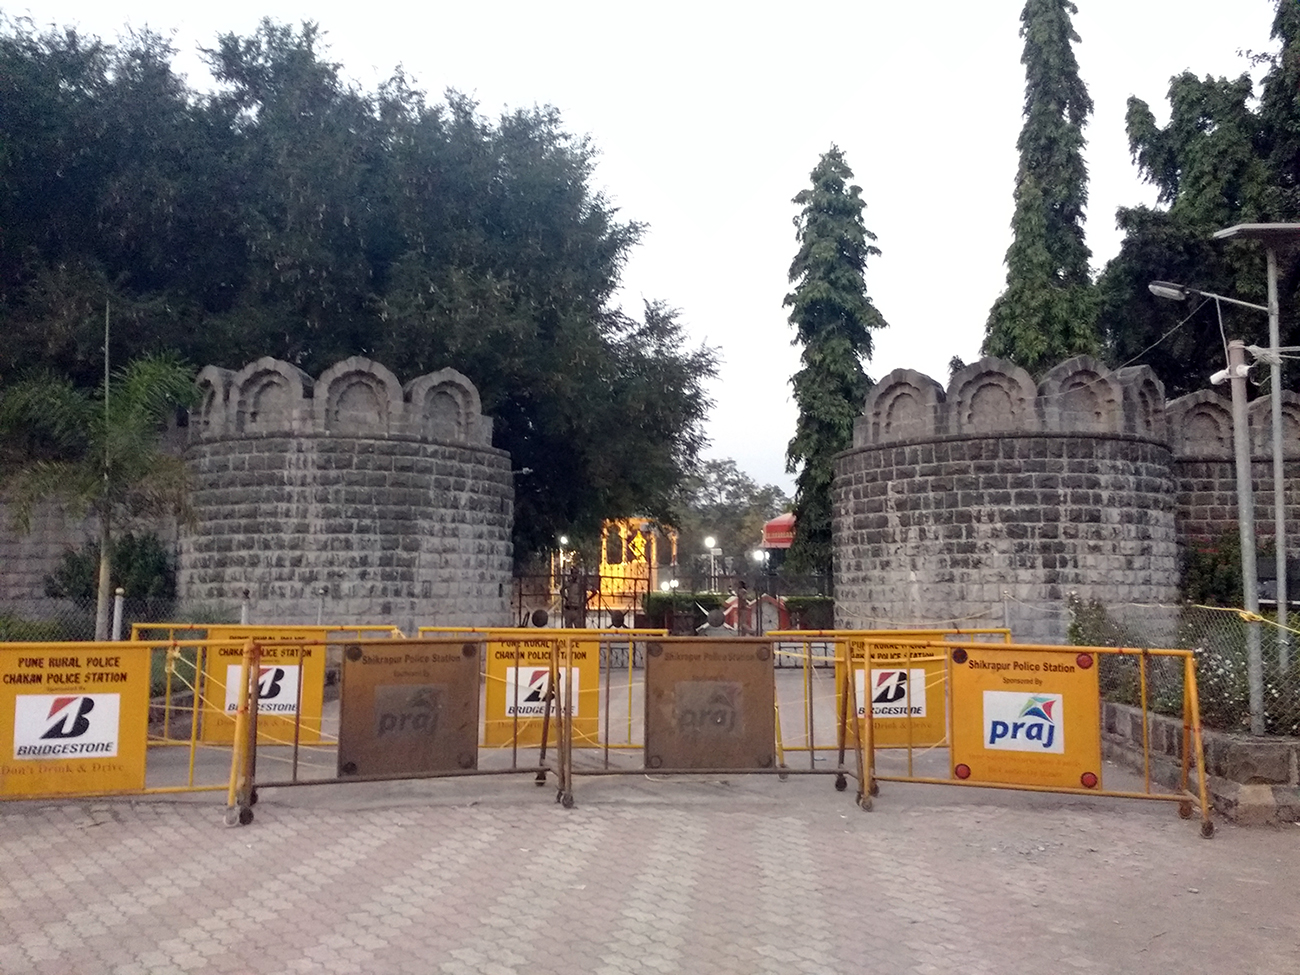 The police have barricaded Sambhaji Maharaj's tomb. Photo: Mridula Chari